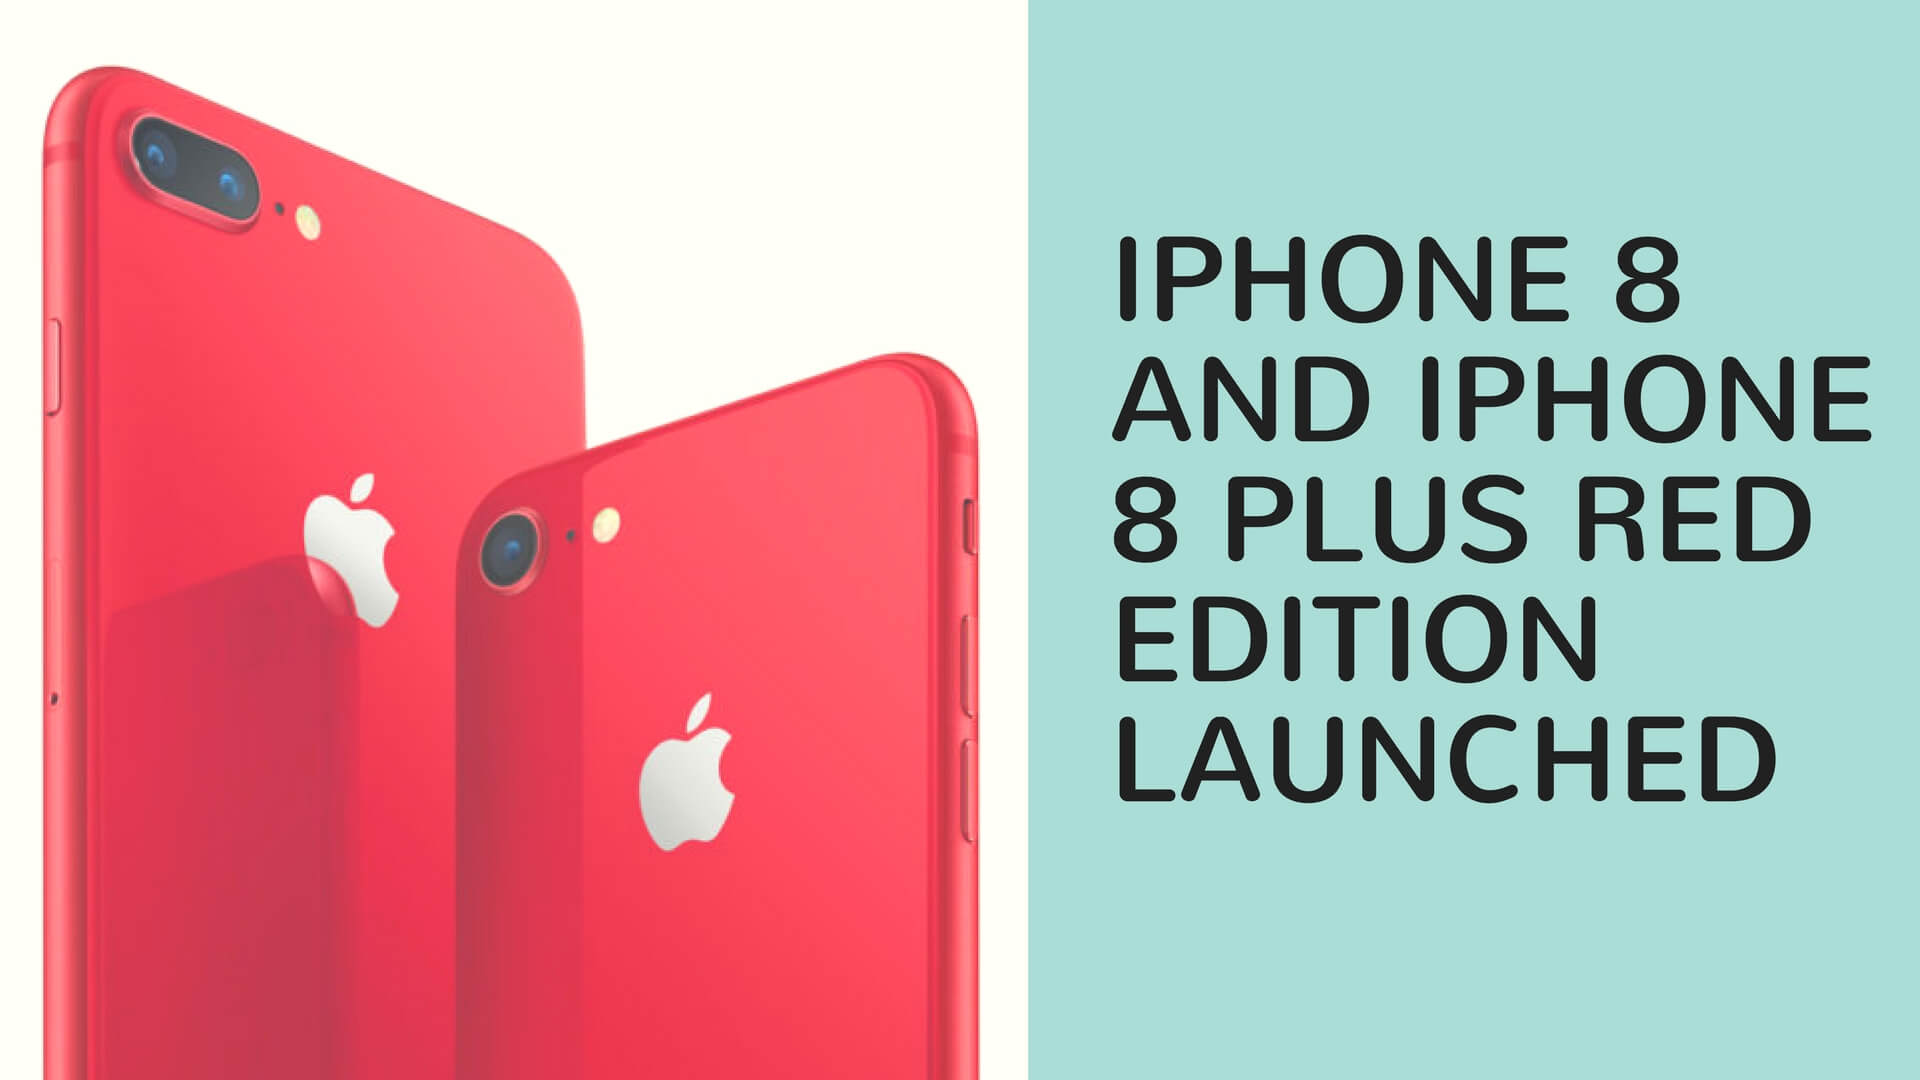 iPhone 8 and iPhone 8 plus Red edition launched